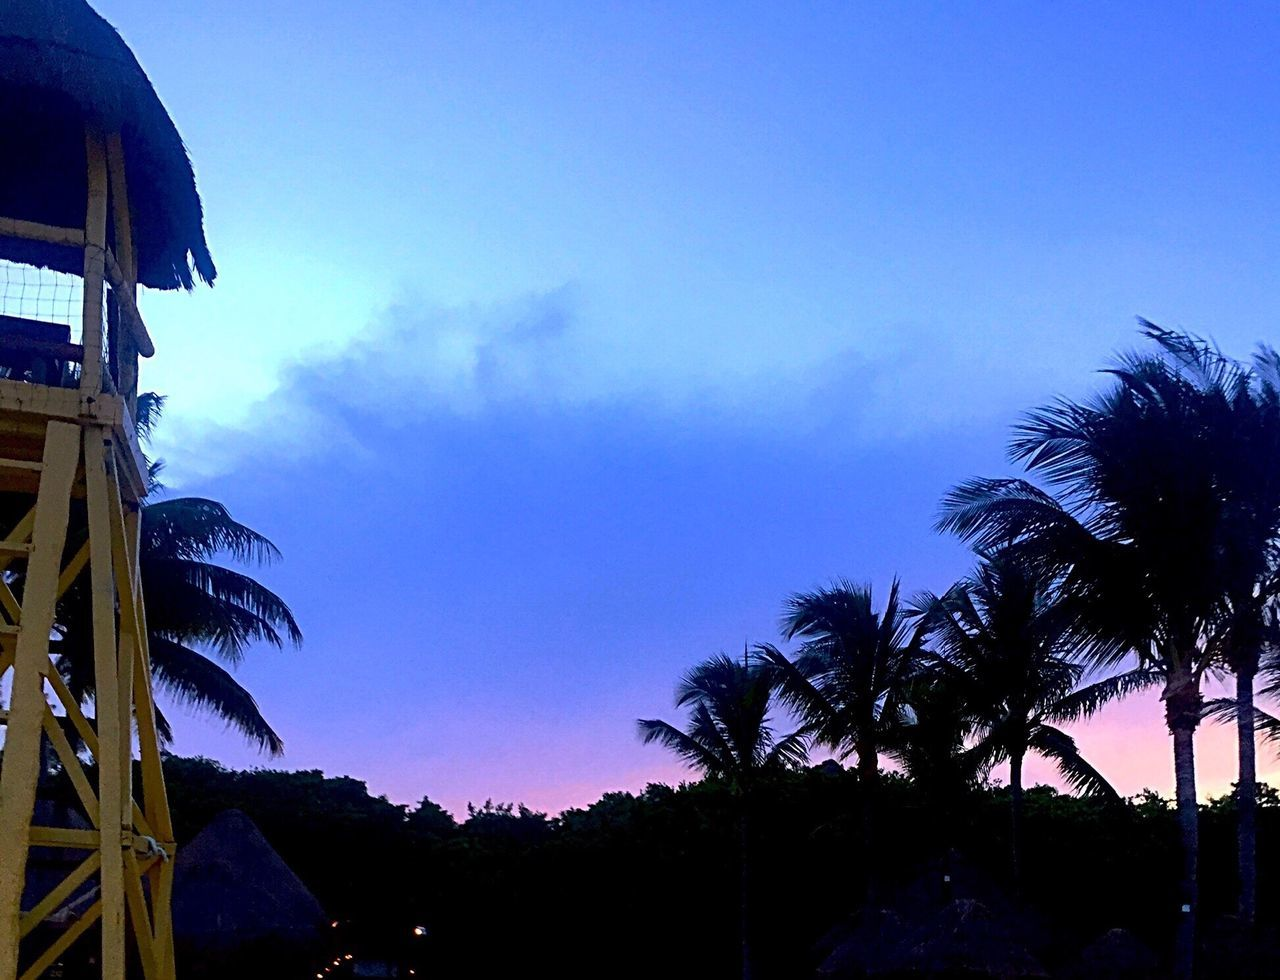 palm tree, tree, no people, sky, silhouette, beauty in nature, low angle view, nature, outdoors, scenics, tranquility, sunset, blue, architecture, built structure, growth, day, building exterior